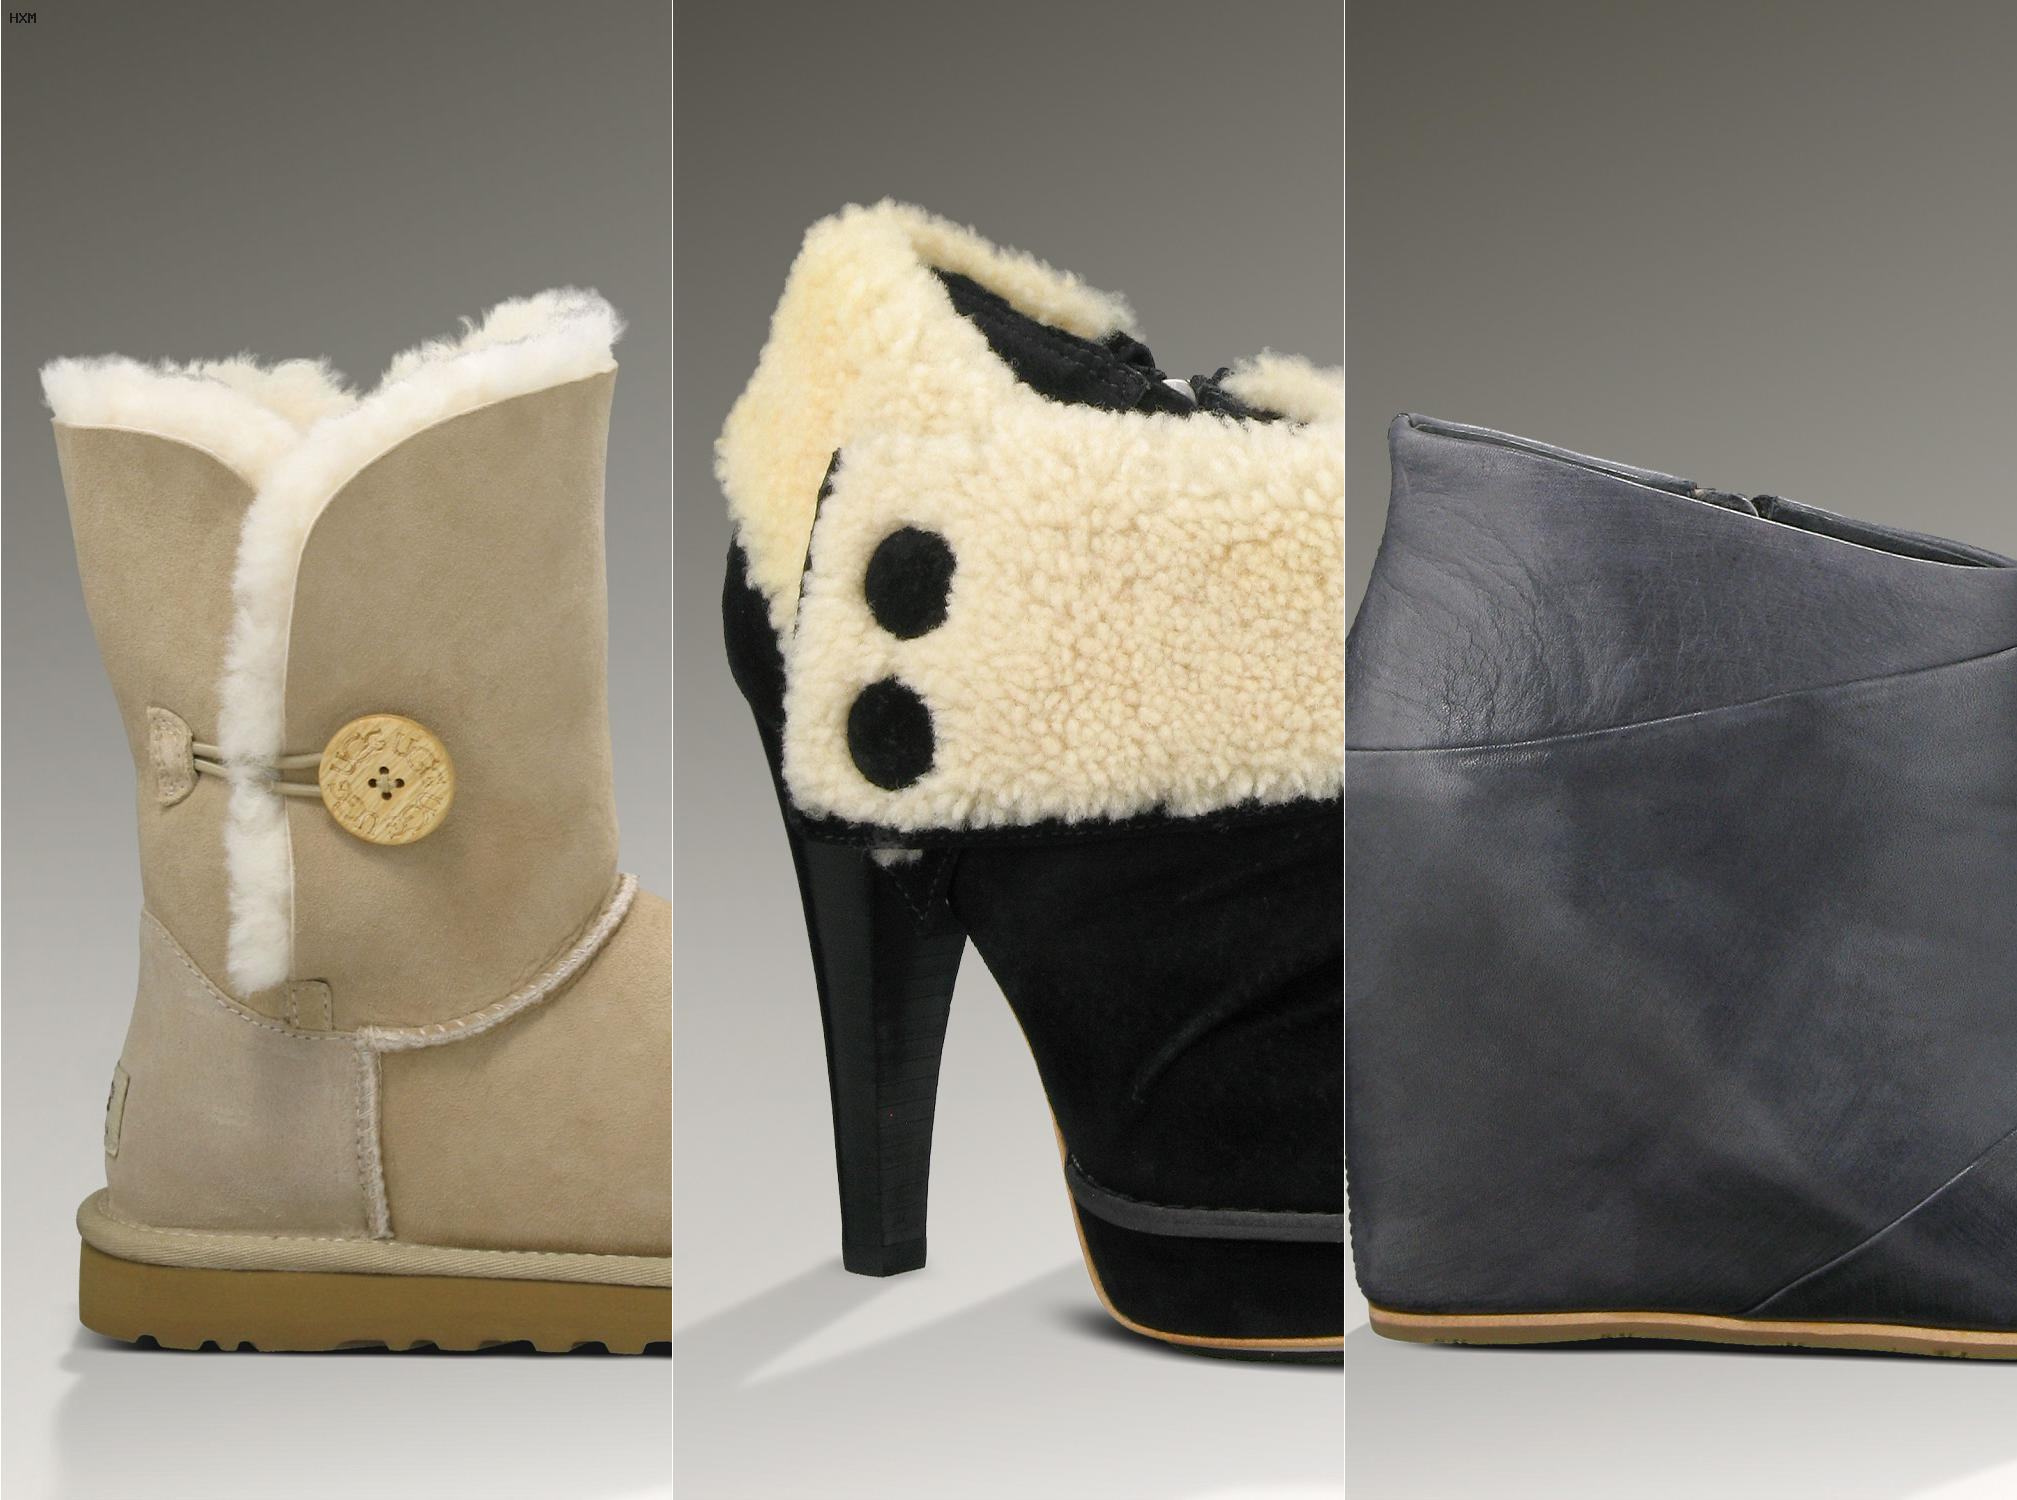 botte style ugg pas cher